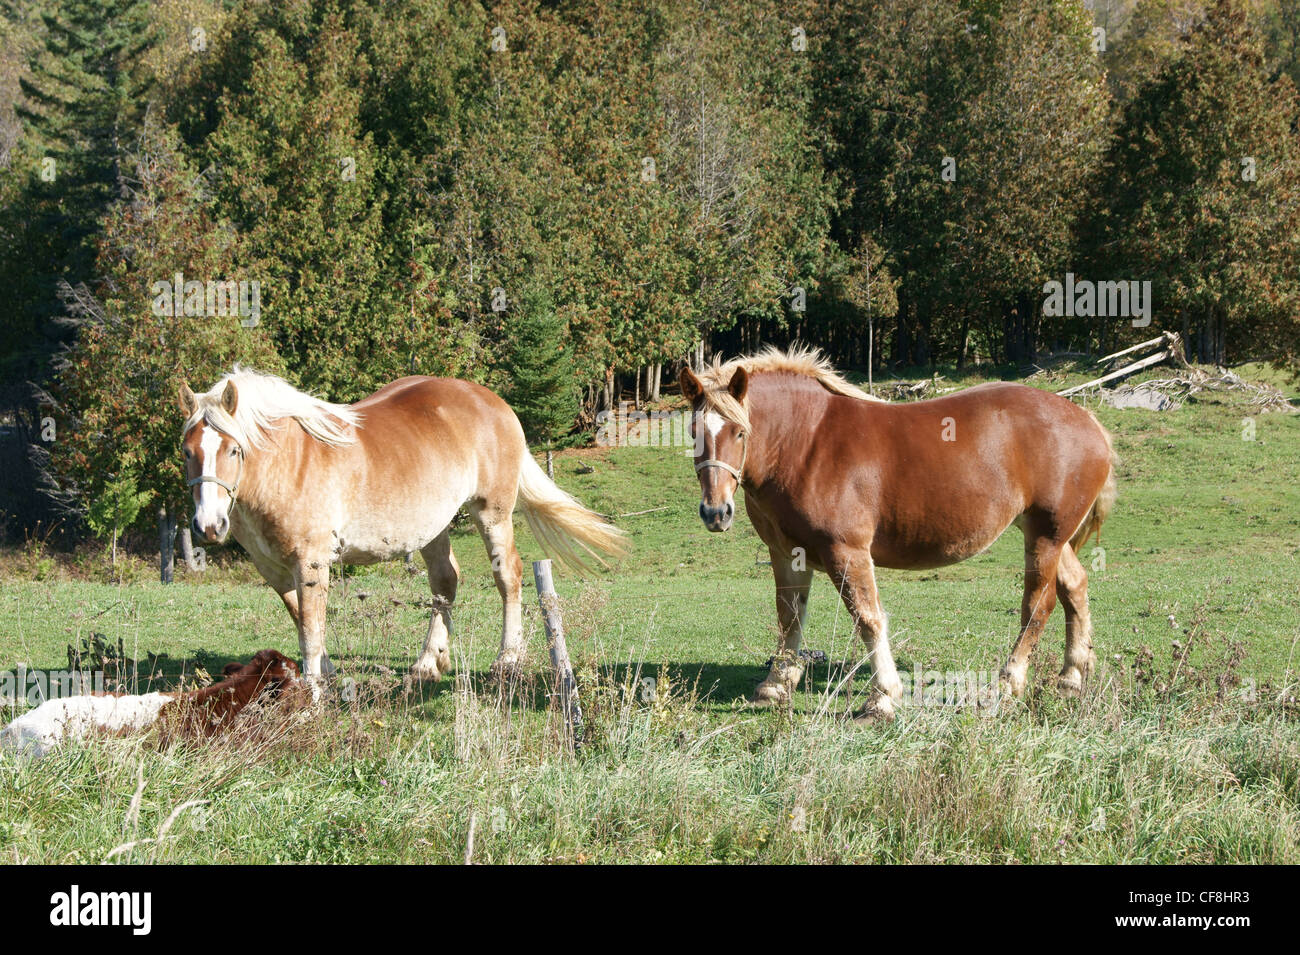 Draft horses, possibly Belgian in Dixmont, Maine. - Stock Image